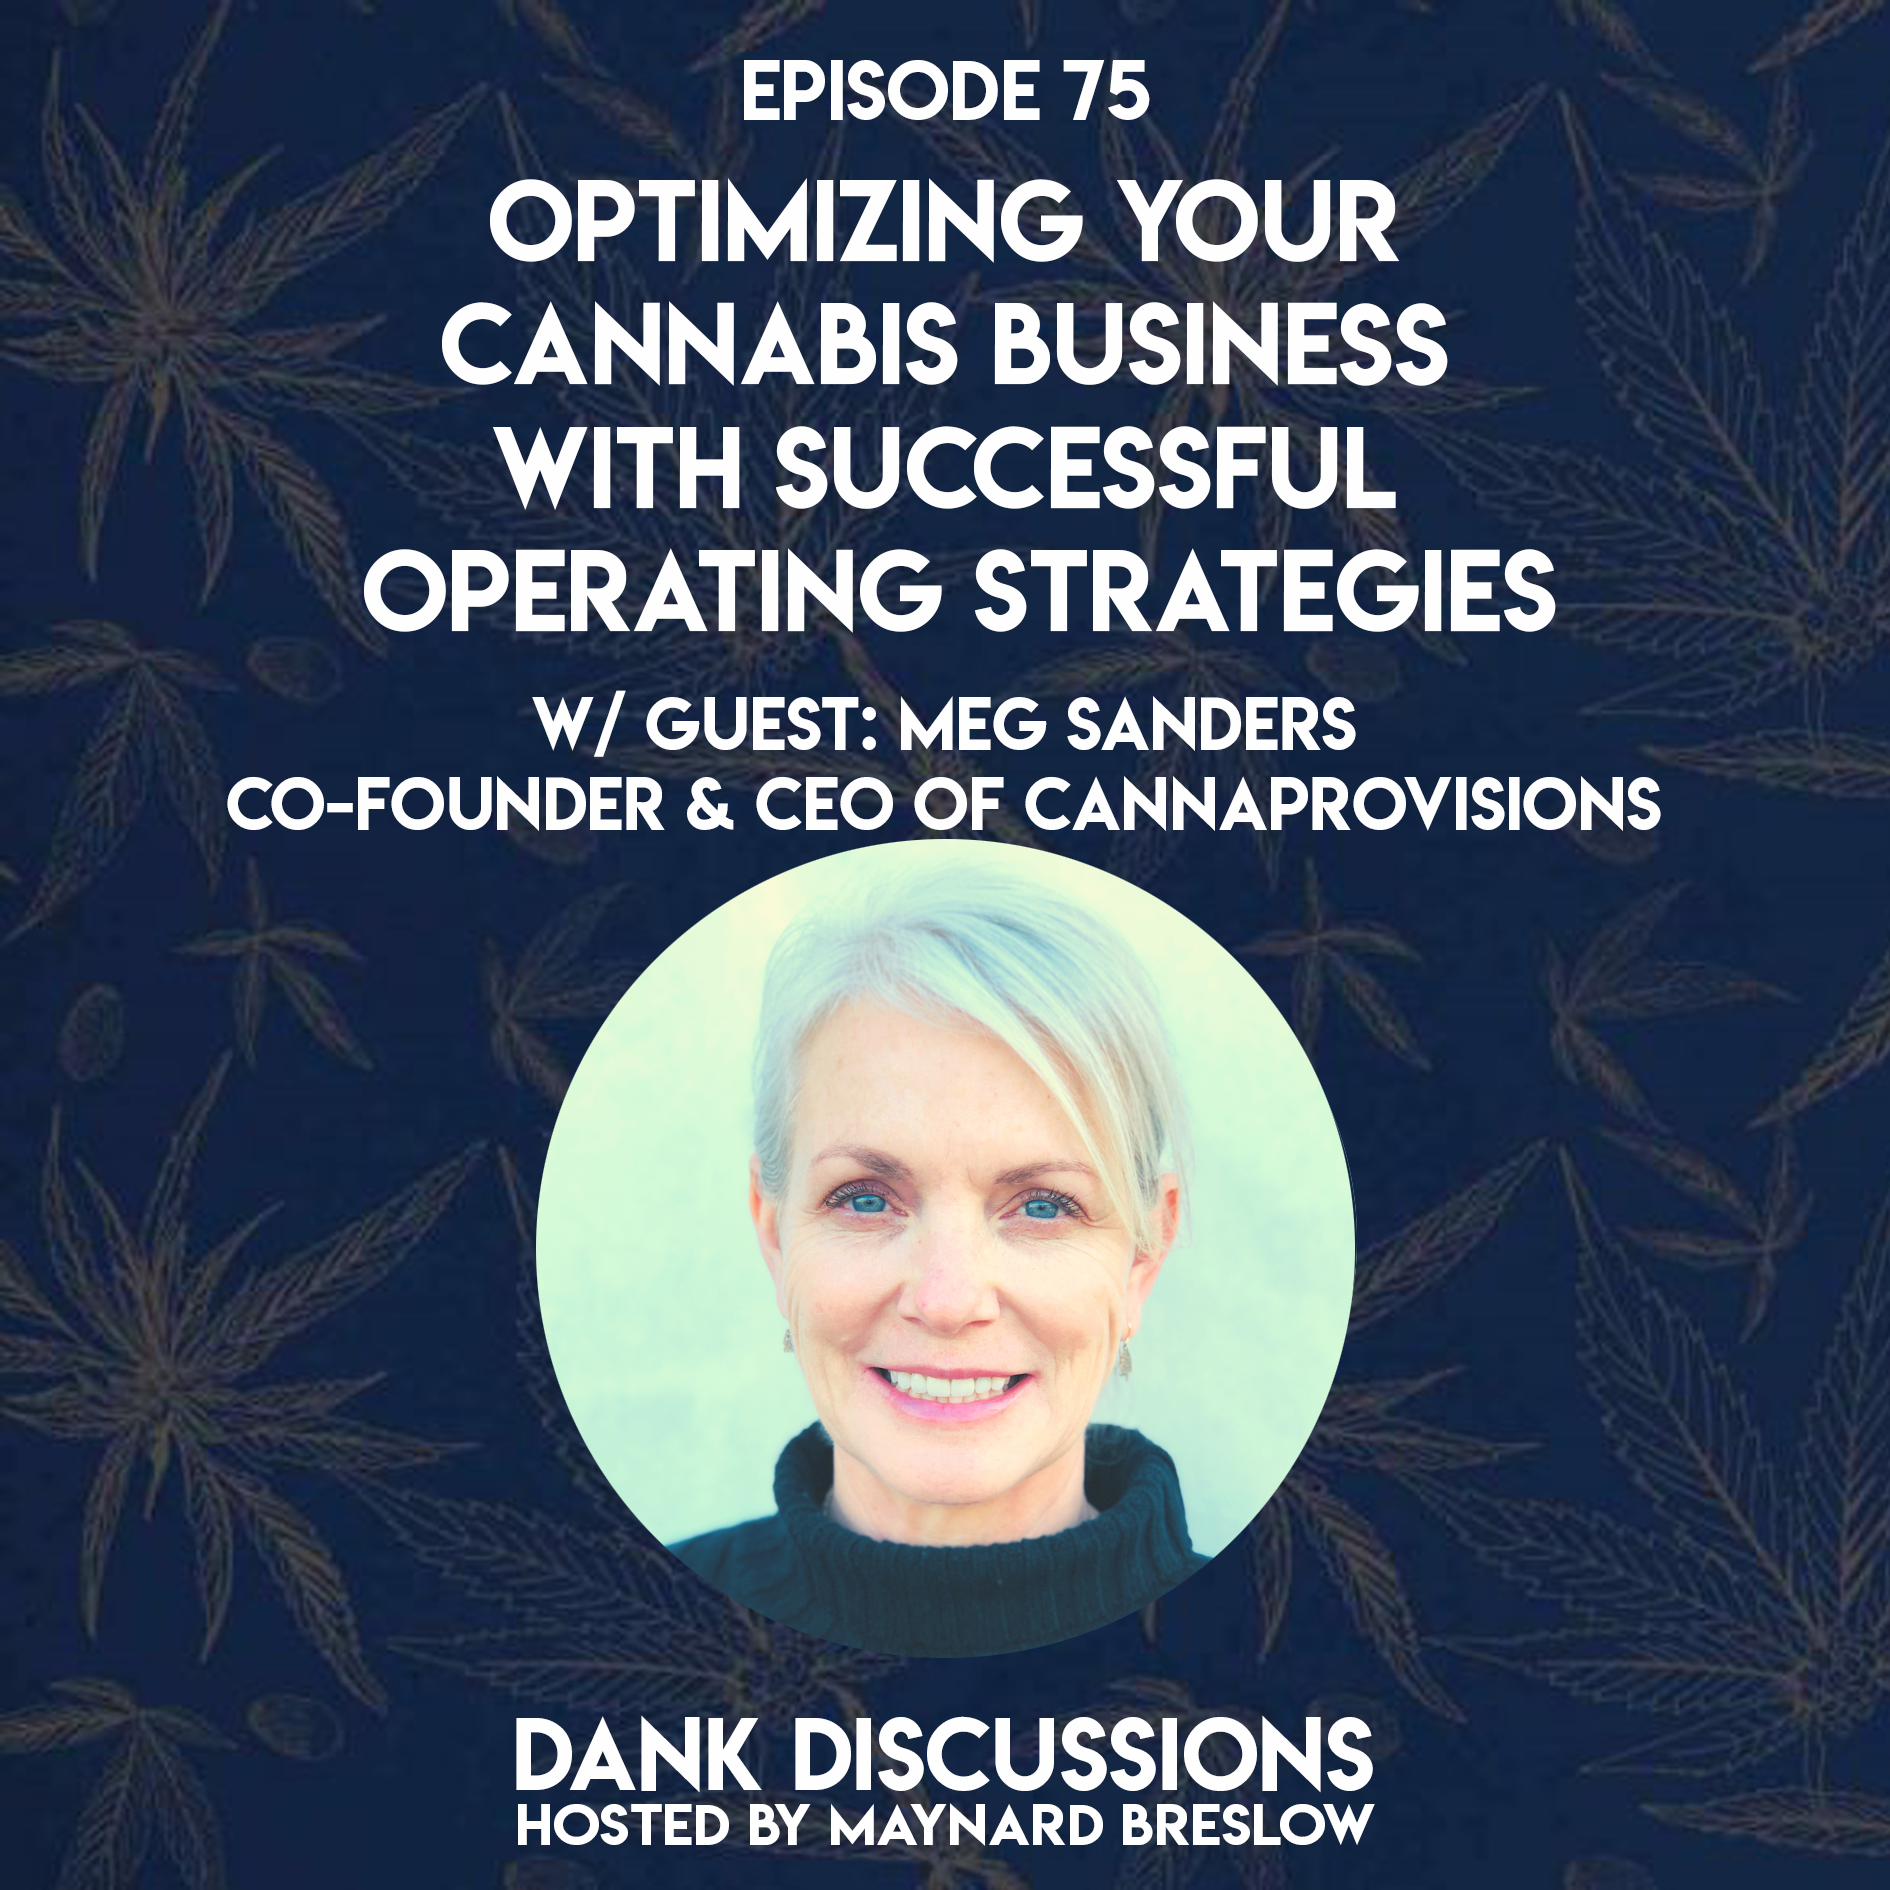 Optimizing your Cannabis Business with Successful Operating Strategies